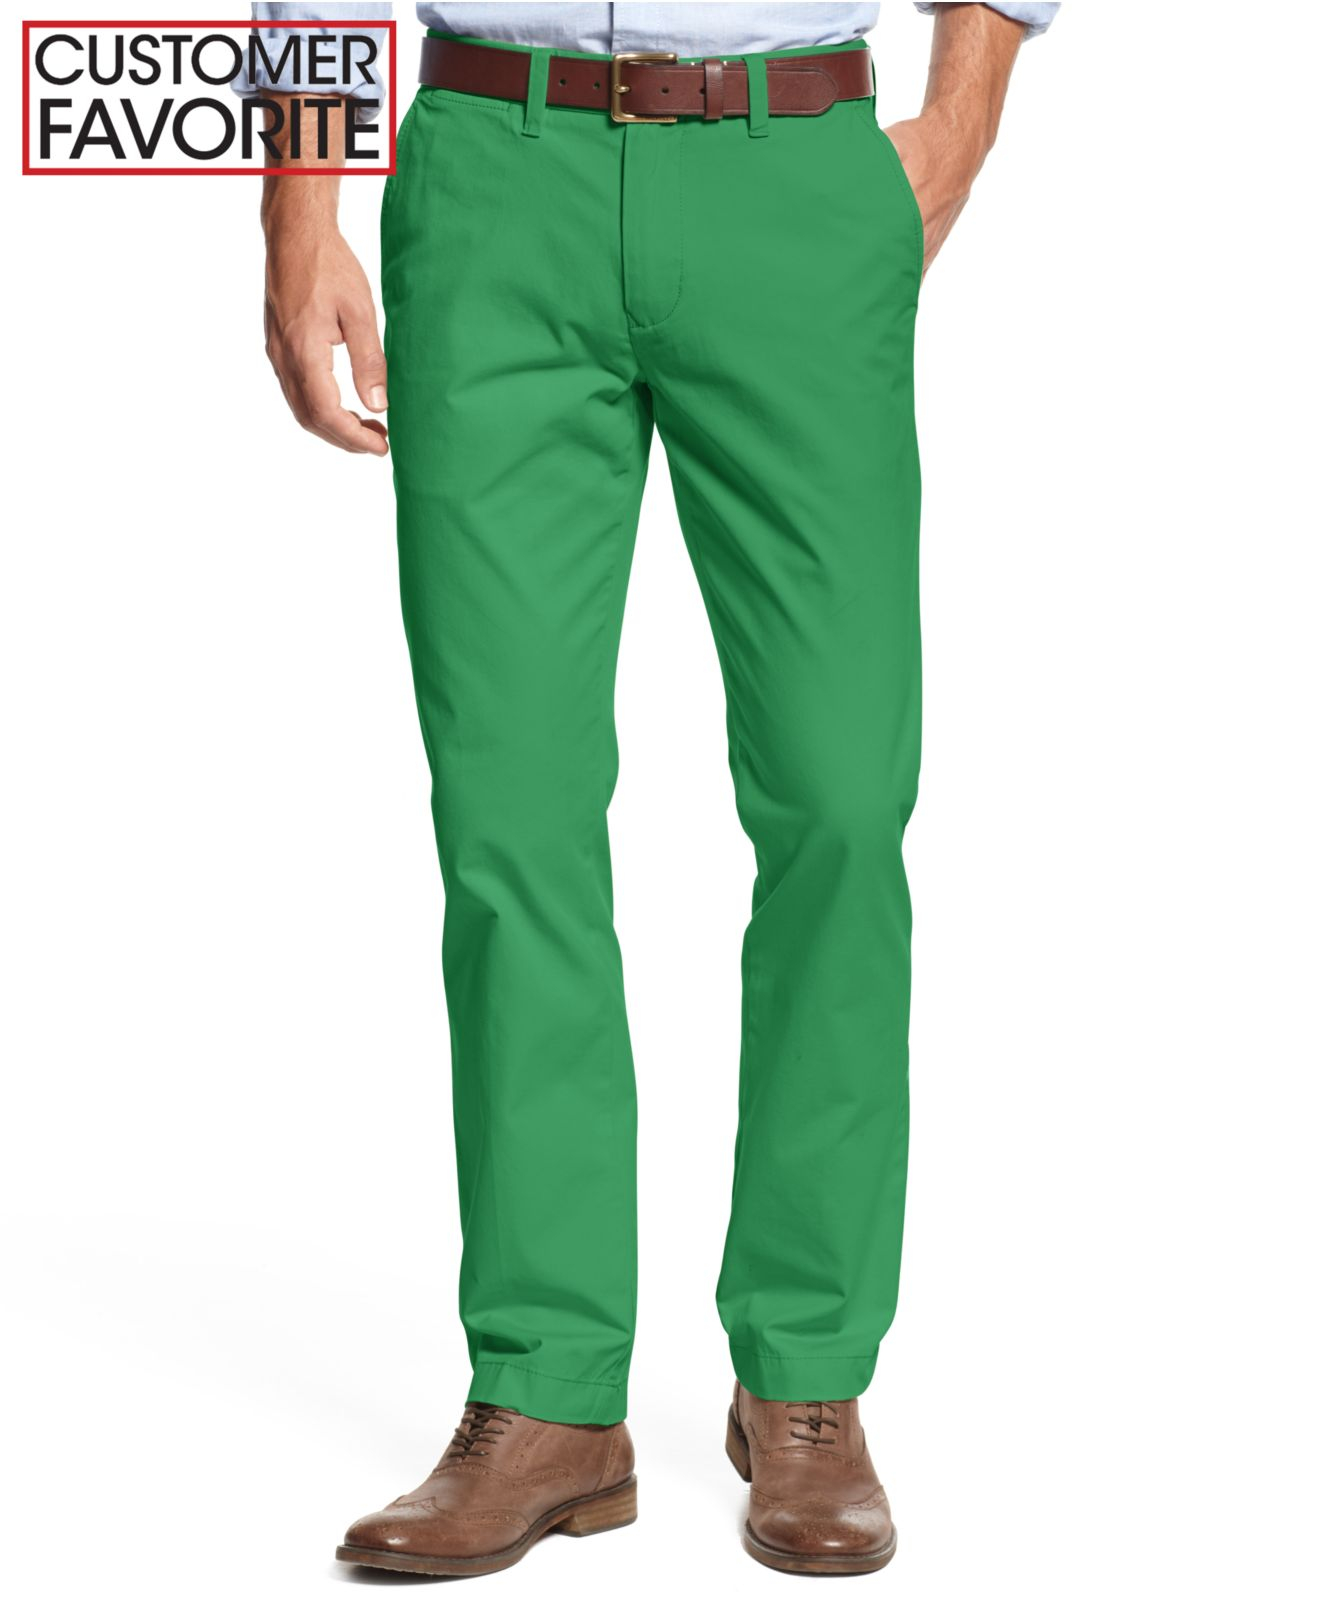 Amazing Green Cargo Pants On Pinterest  Army Cargo Pants Army Green Pants